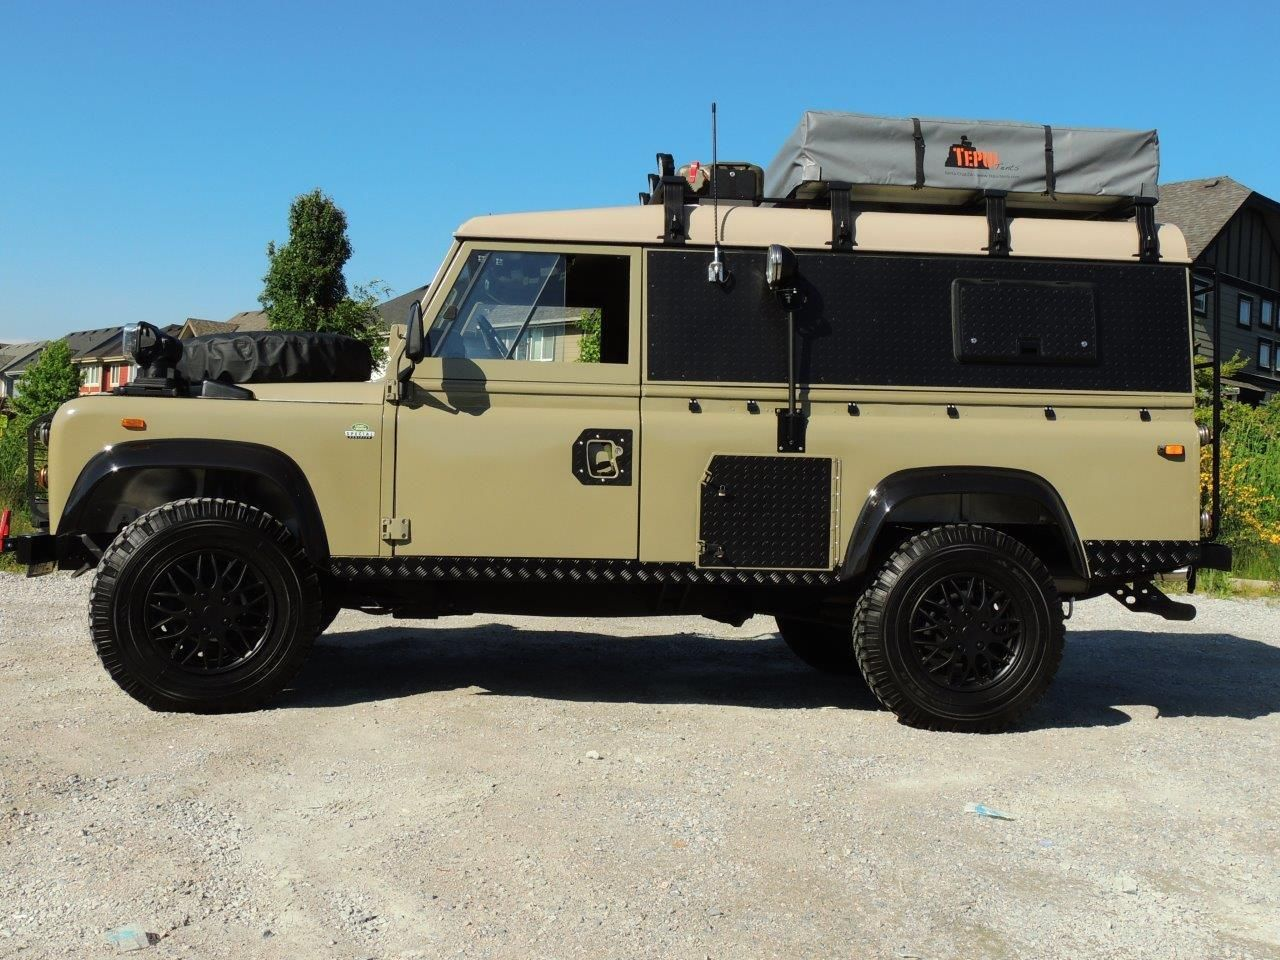 1990 Land Rover Defender 110 Expedition/Overland - Classic ...